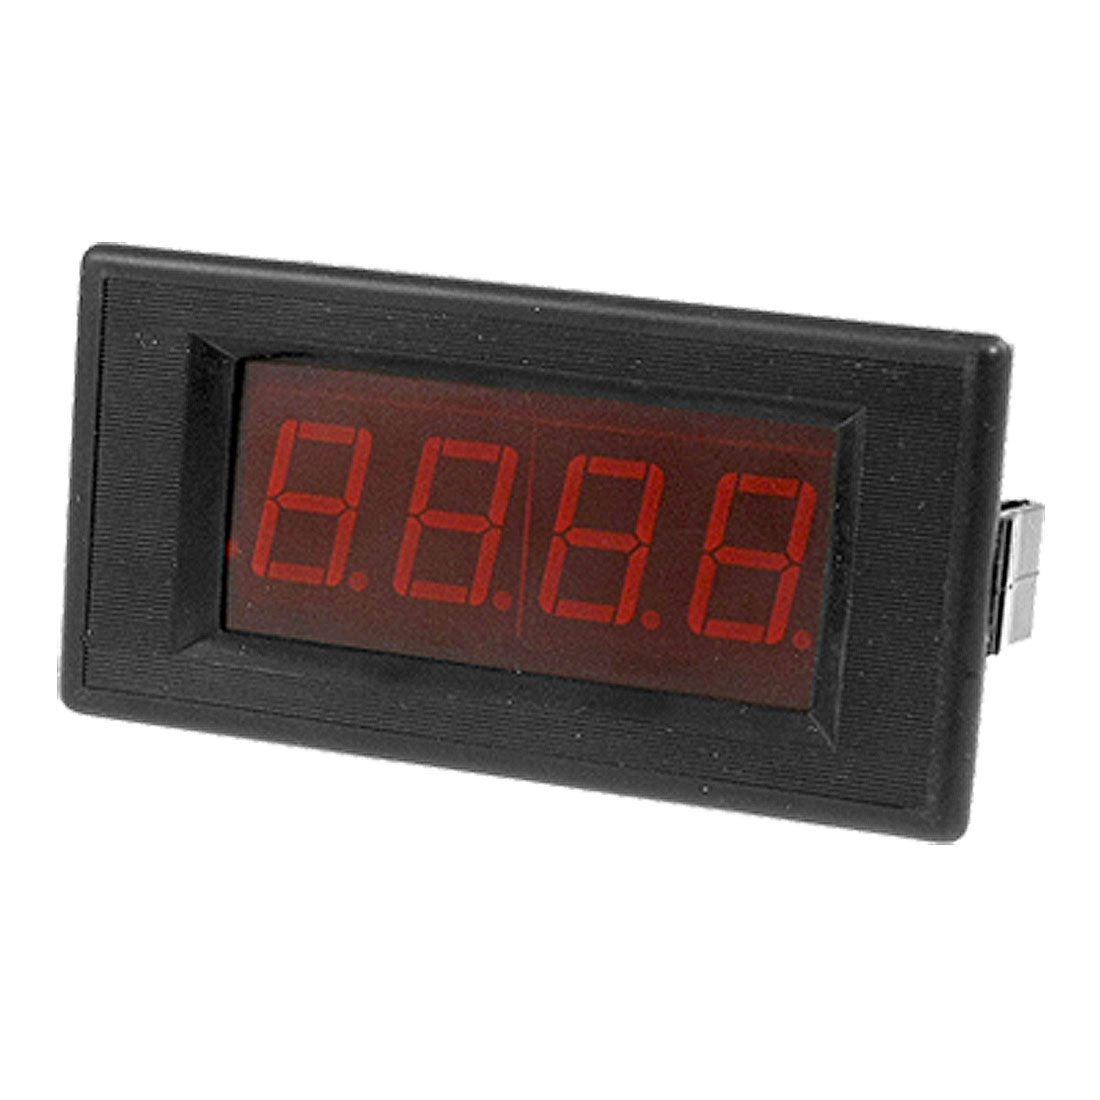 Red LED Display 0-400 Degree Celsius Thermometer Panel Temperature Meter